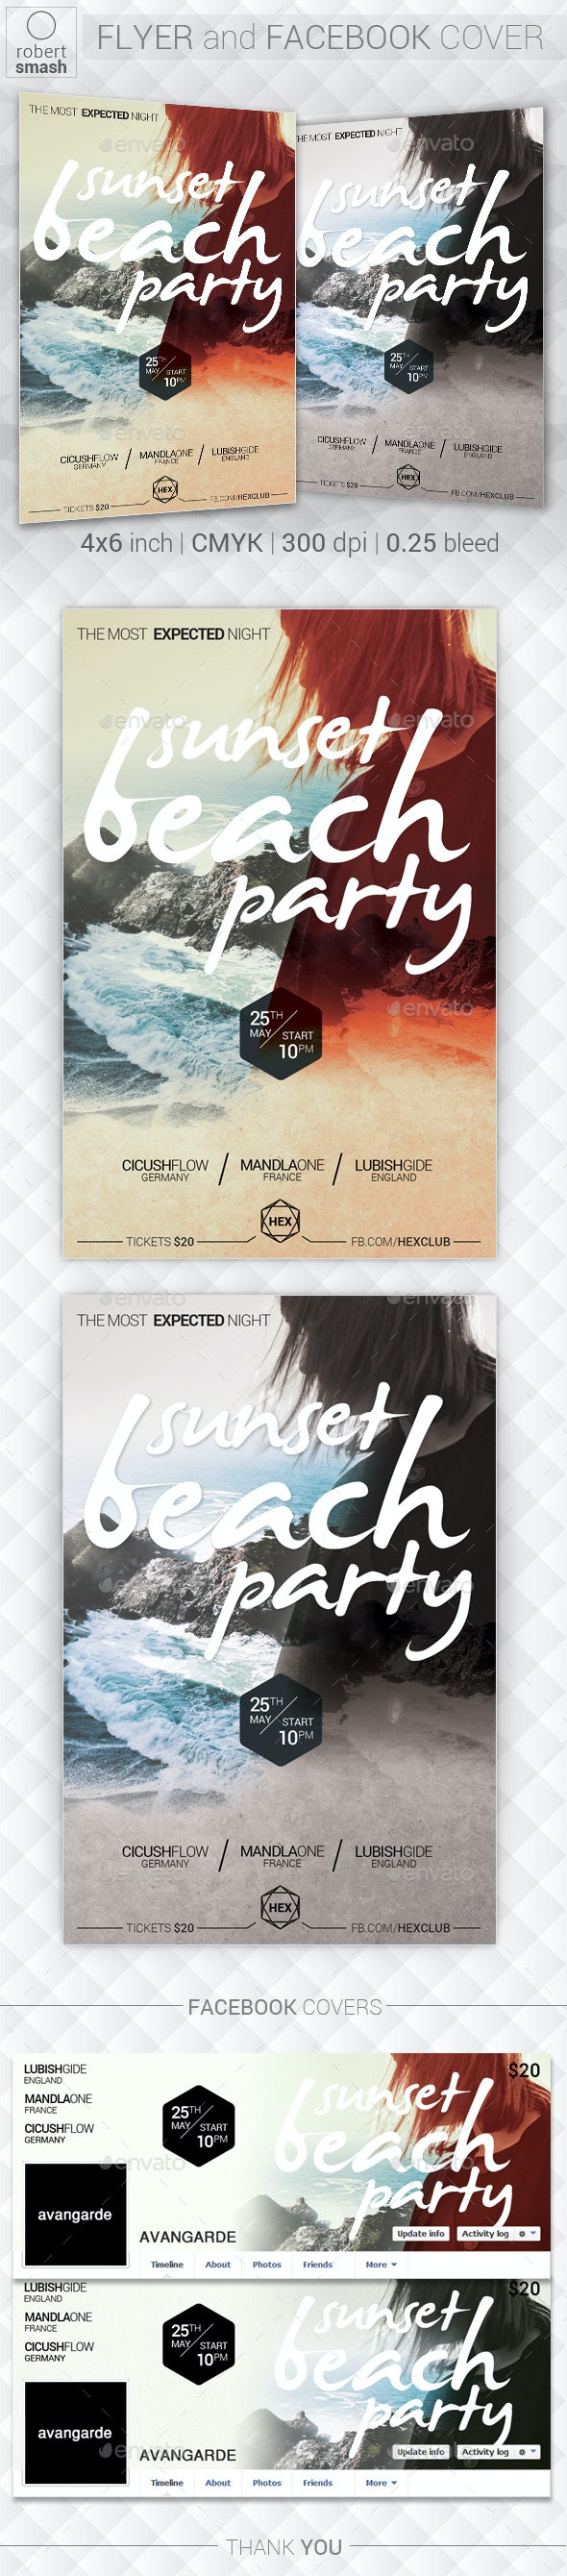 Sunset Beach Party Music Flyer - Clubs & Parties Events